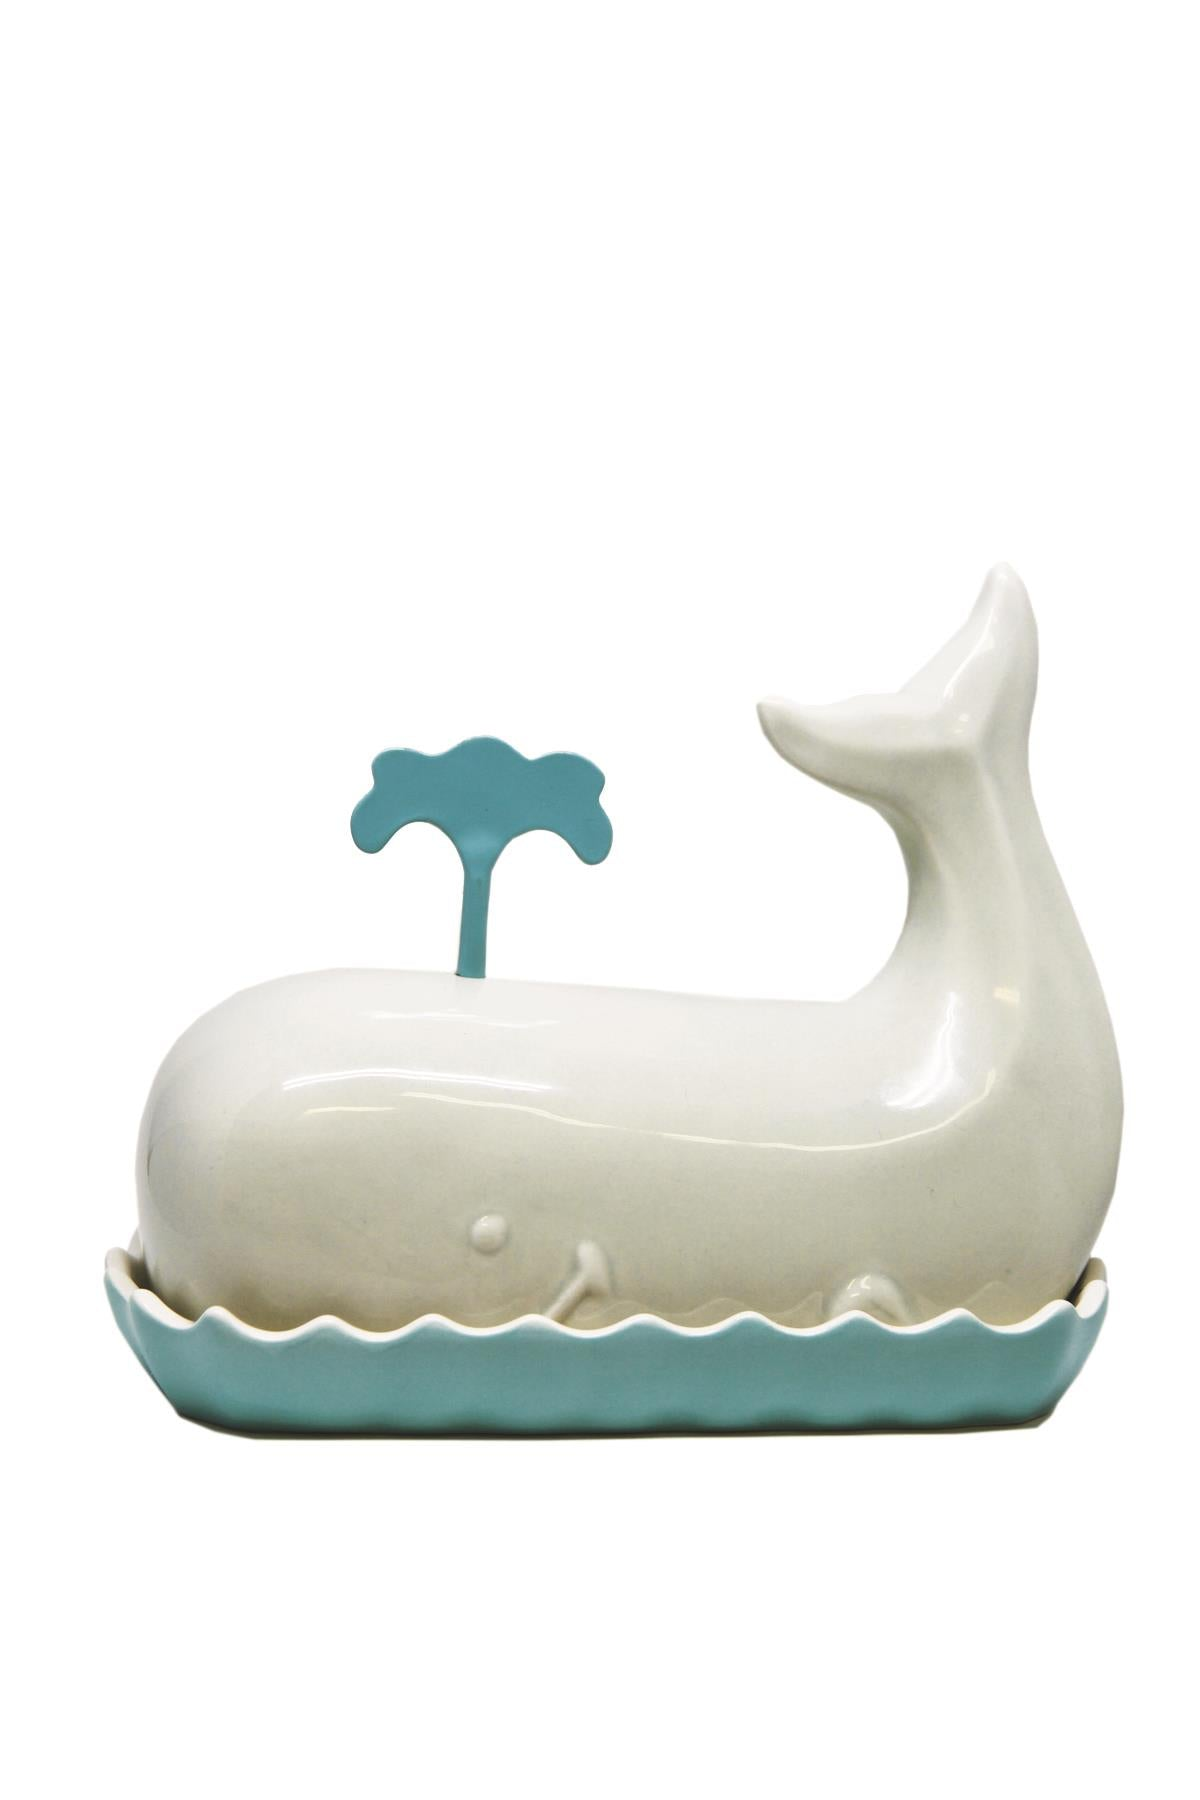 Whale Shaped Butter Dish | Newfoundland | Johnny Ruth